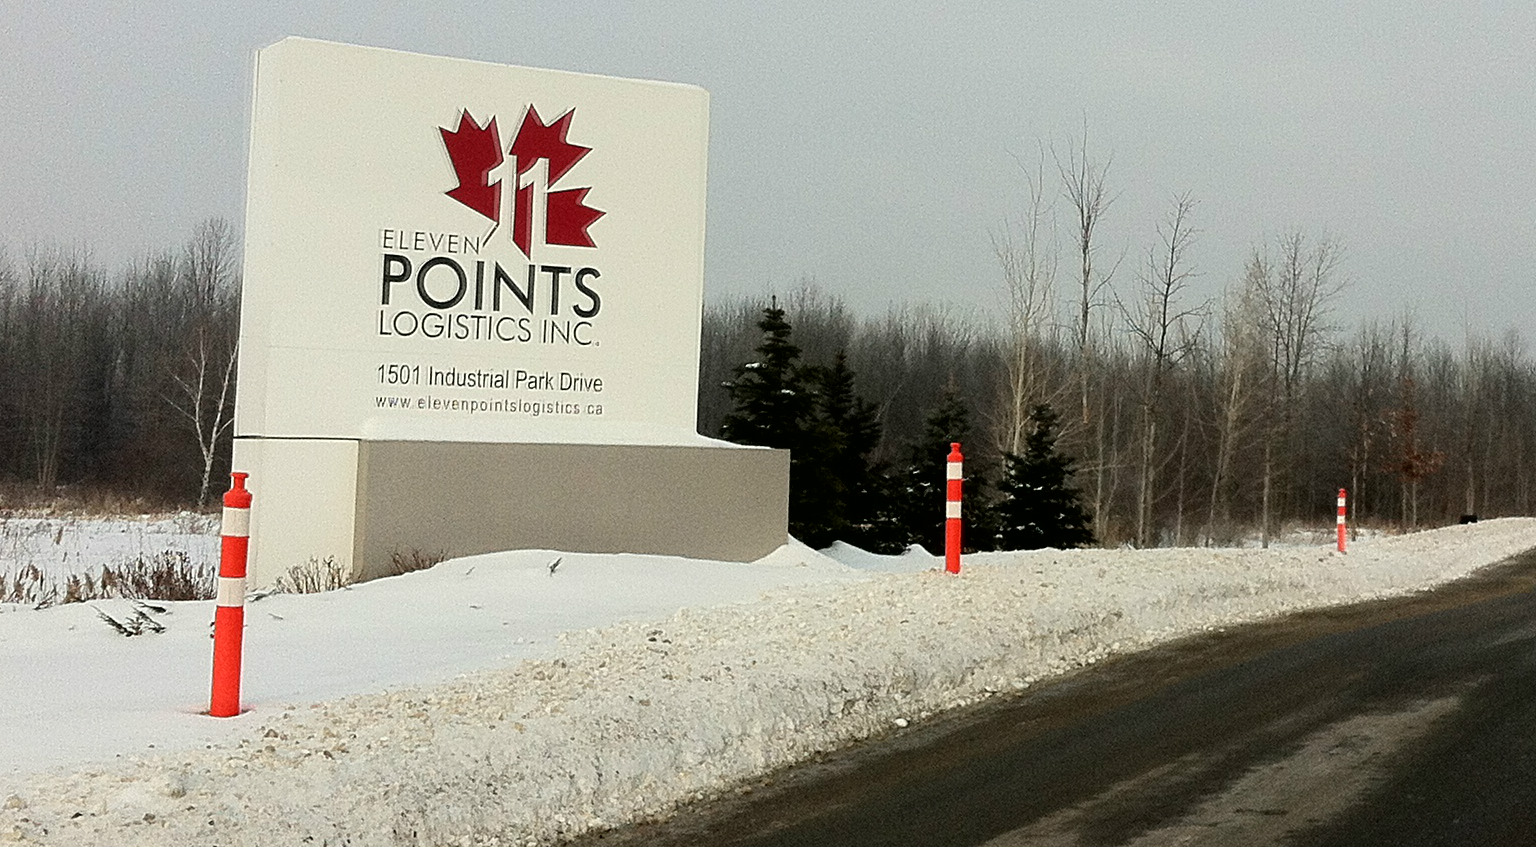 UPDATE: Cornwall Target distribution centre closing, rep confirms